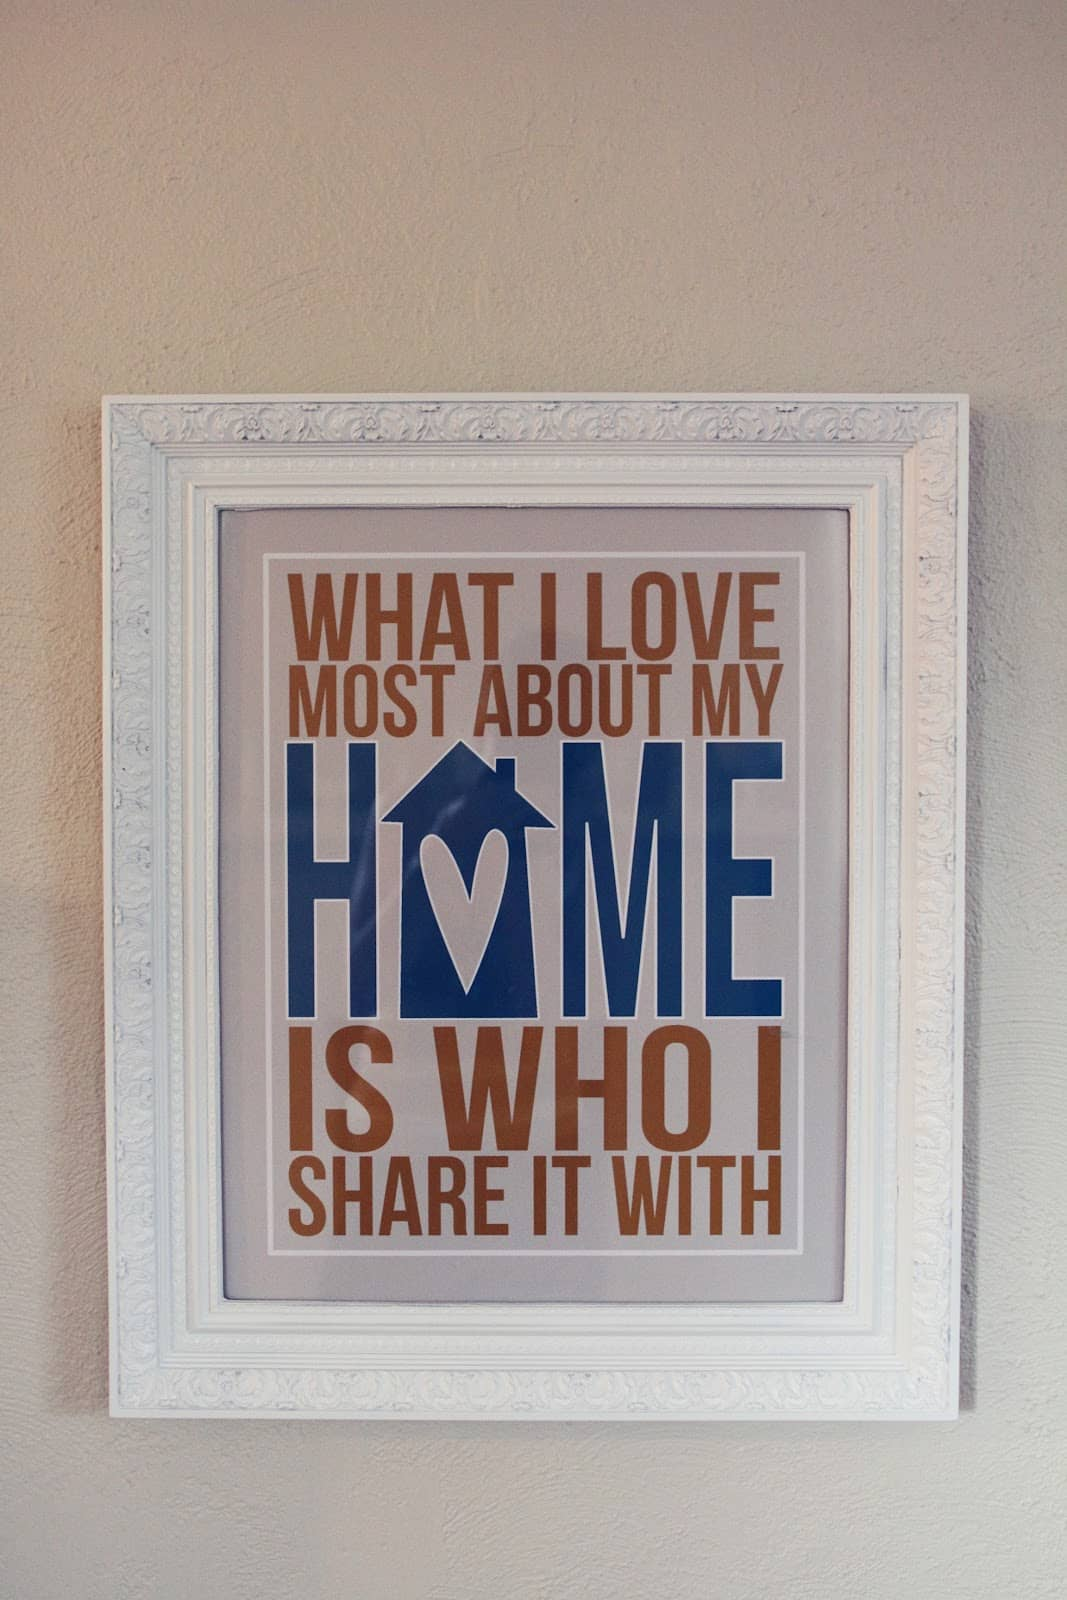 putting marriage first